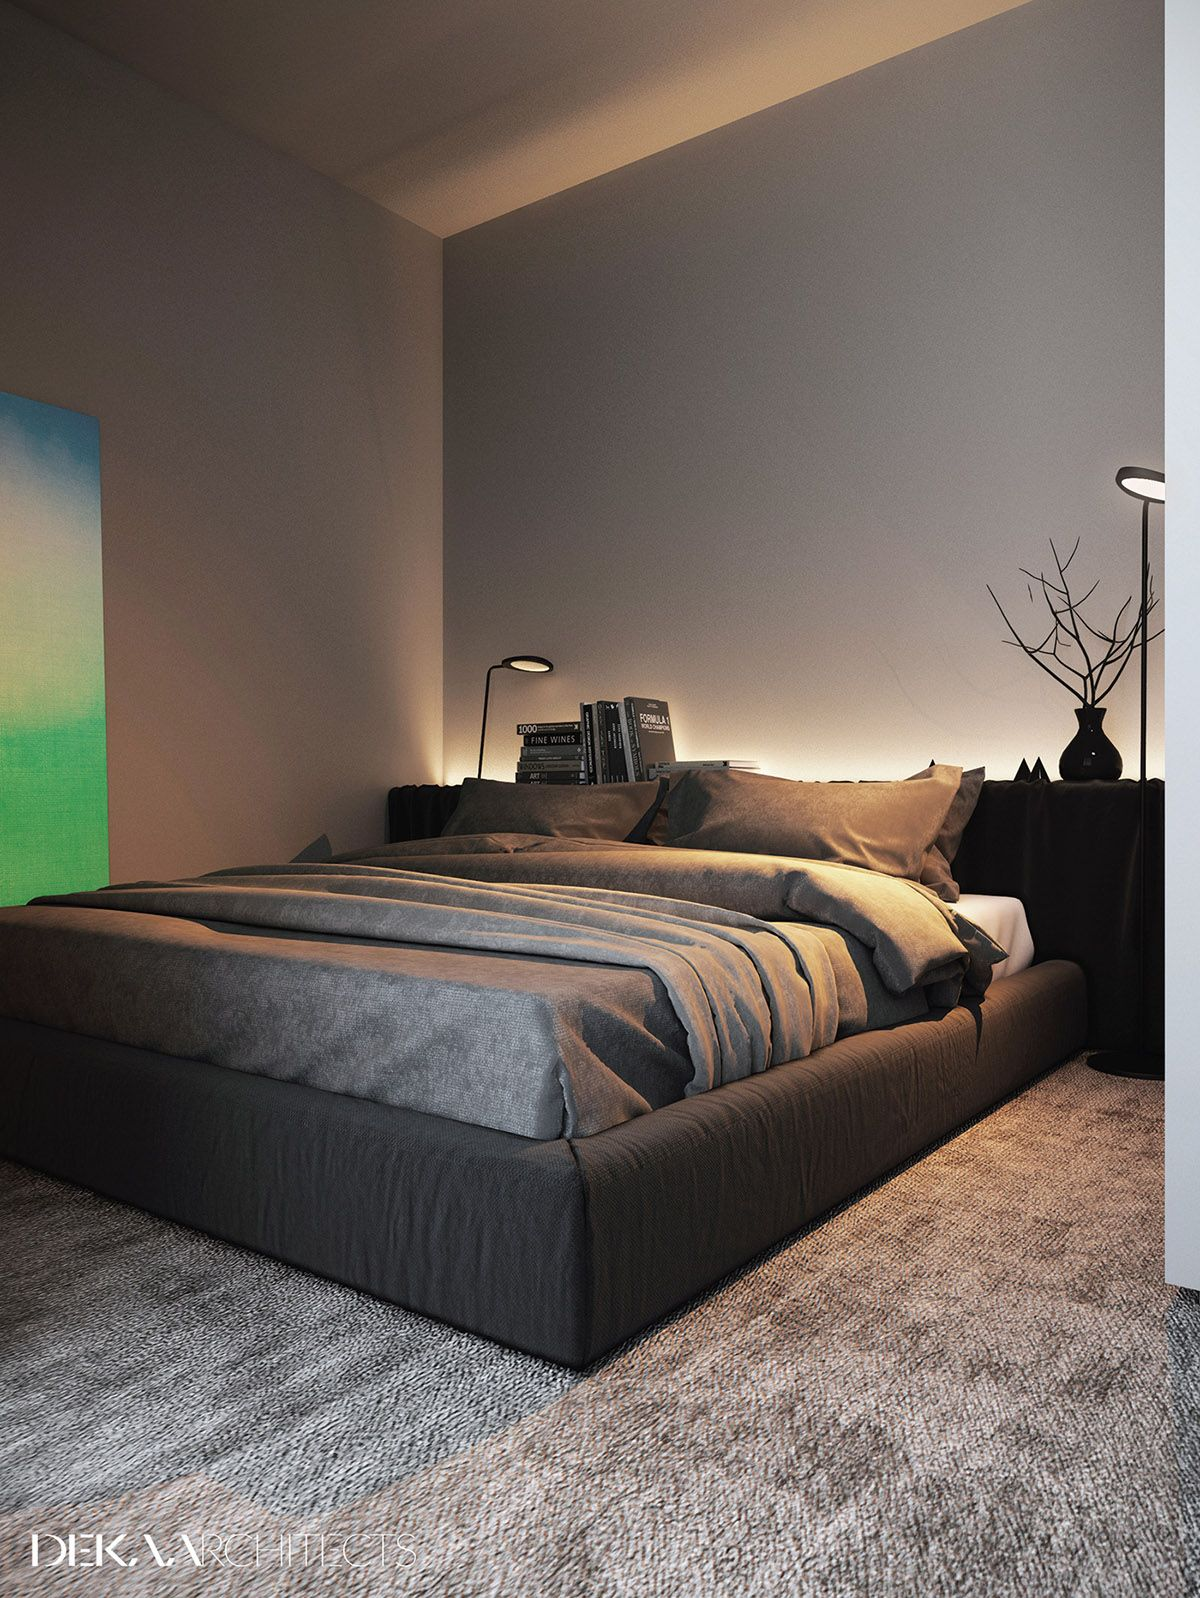 Grey Raw Masculine Interiors 36 Soft Bedroom Lighting Creates A Relaxing Ambiance Matching Lamps Provides Reading Light At Each Side Of The Bed